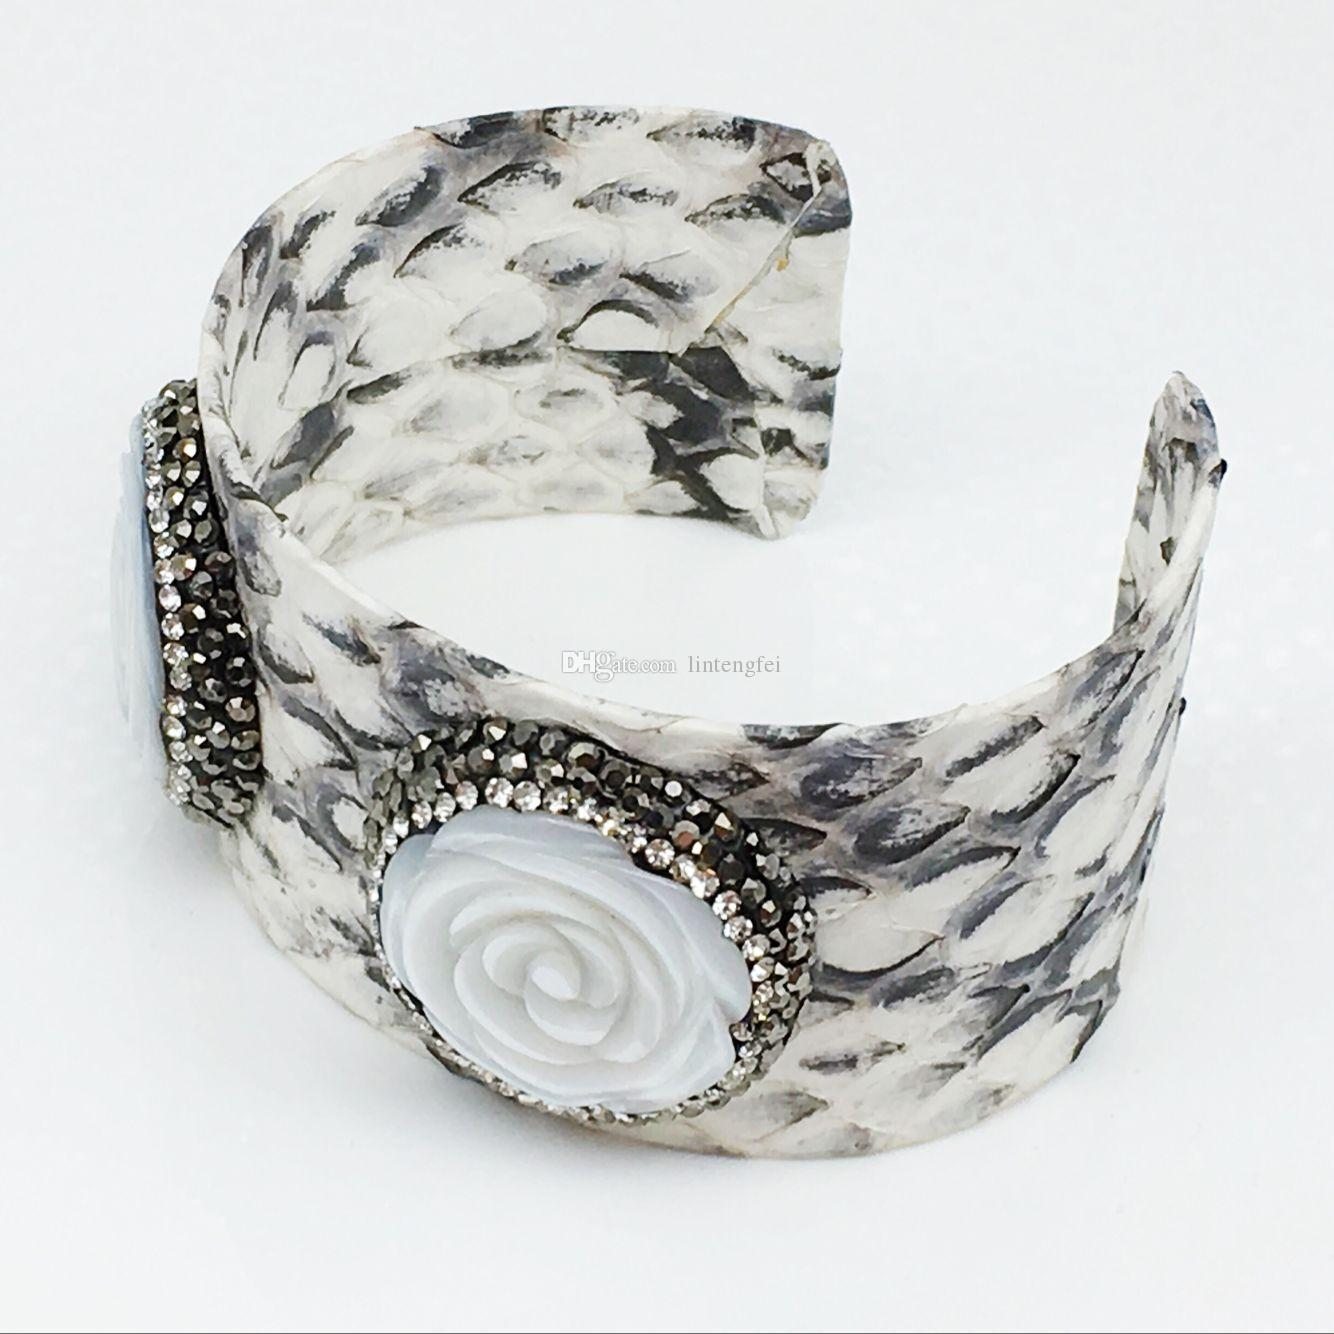 Two Pearl Rose Pattern 30cm Cuff Bangle made of Real Snakeskin High Quality Unisex Jewelry Luxury Bracelets for Women